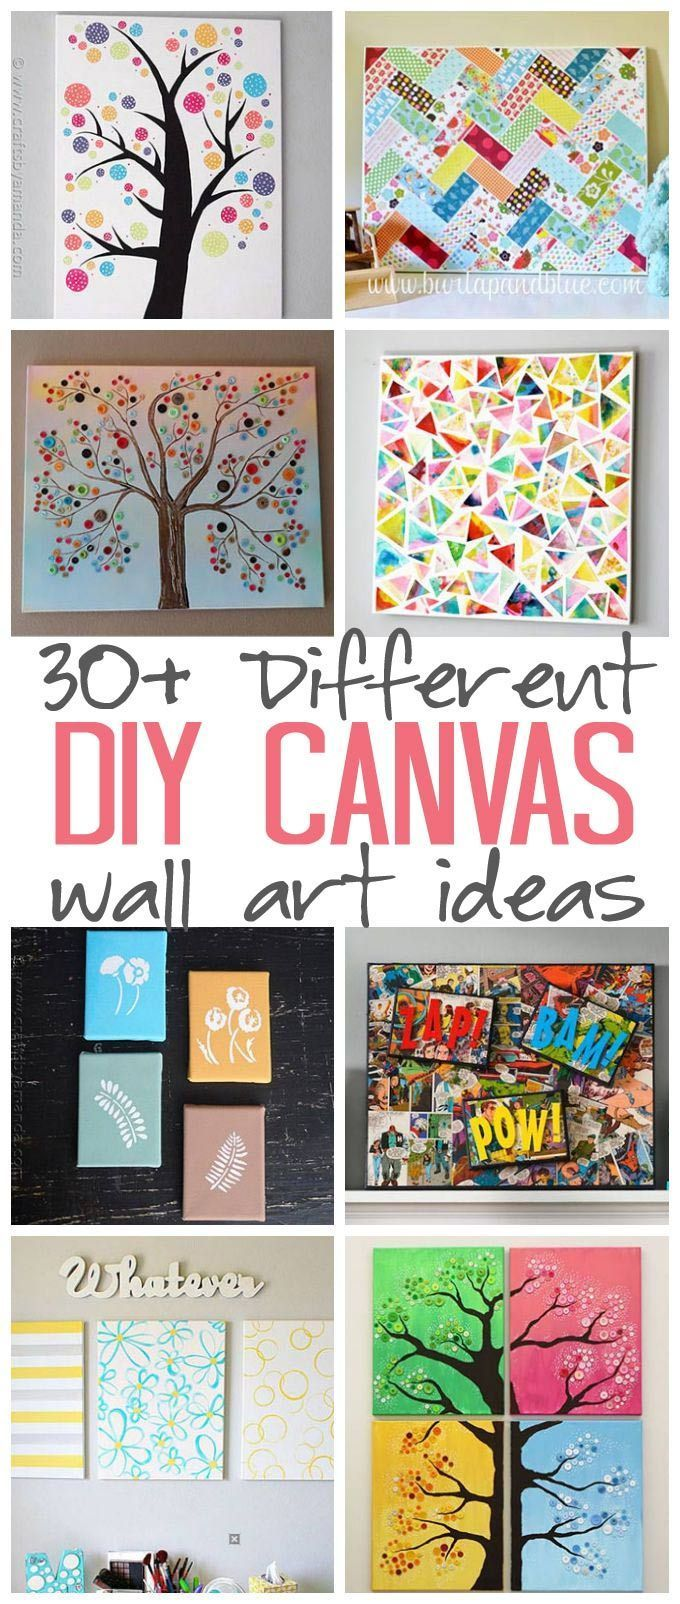 Diy canvas wall art ideas 30 canvas tutorials for adults for Childrens canvas ideas